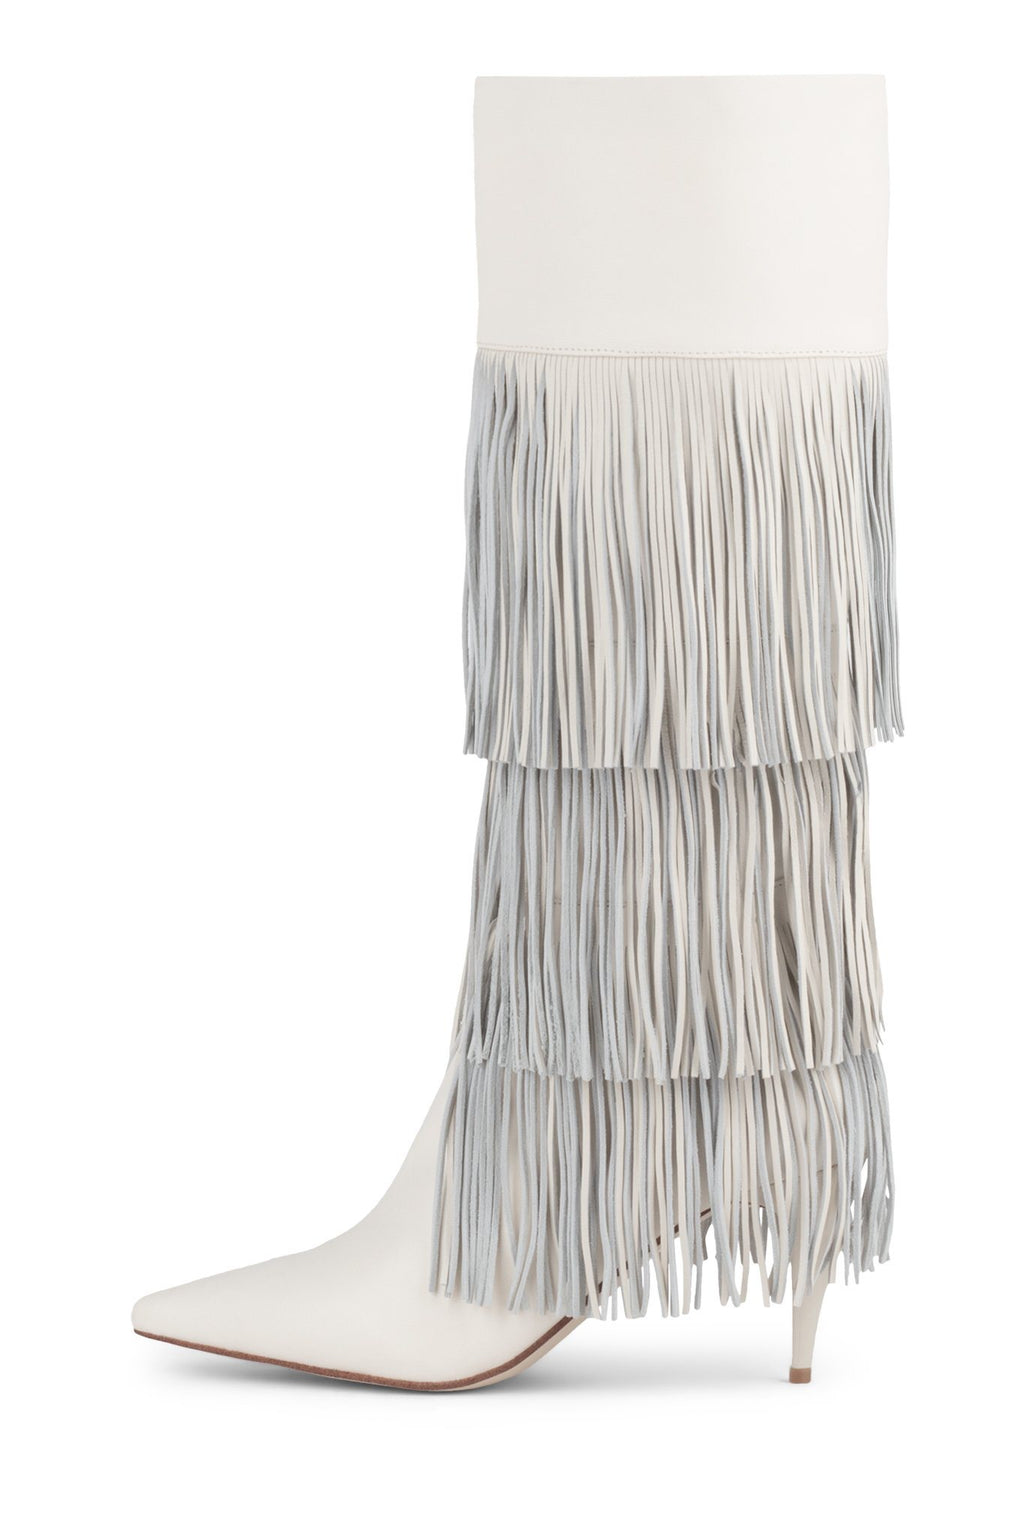 FROLIK Knee-High Boot YYH Ivory 6